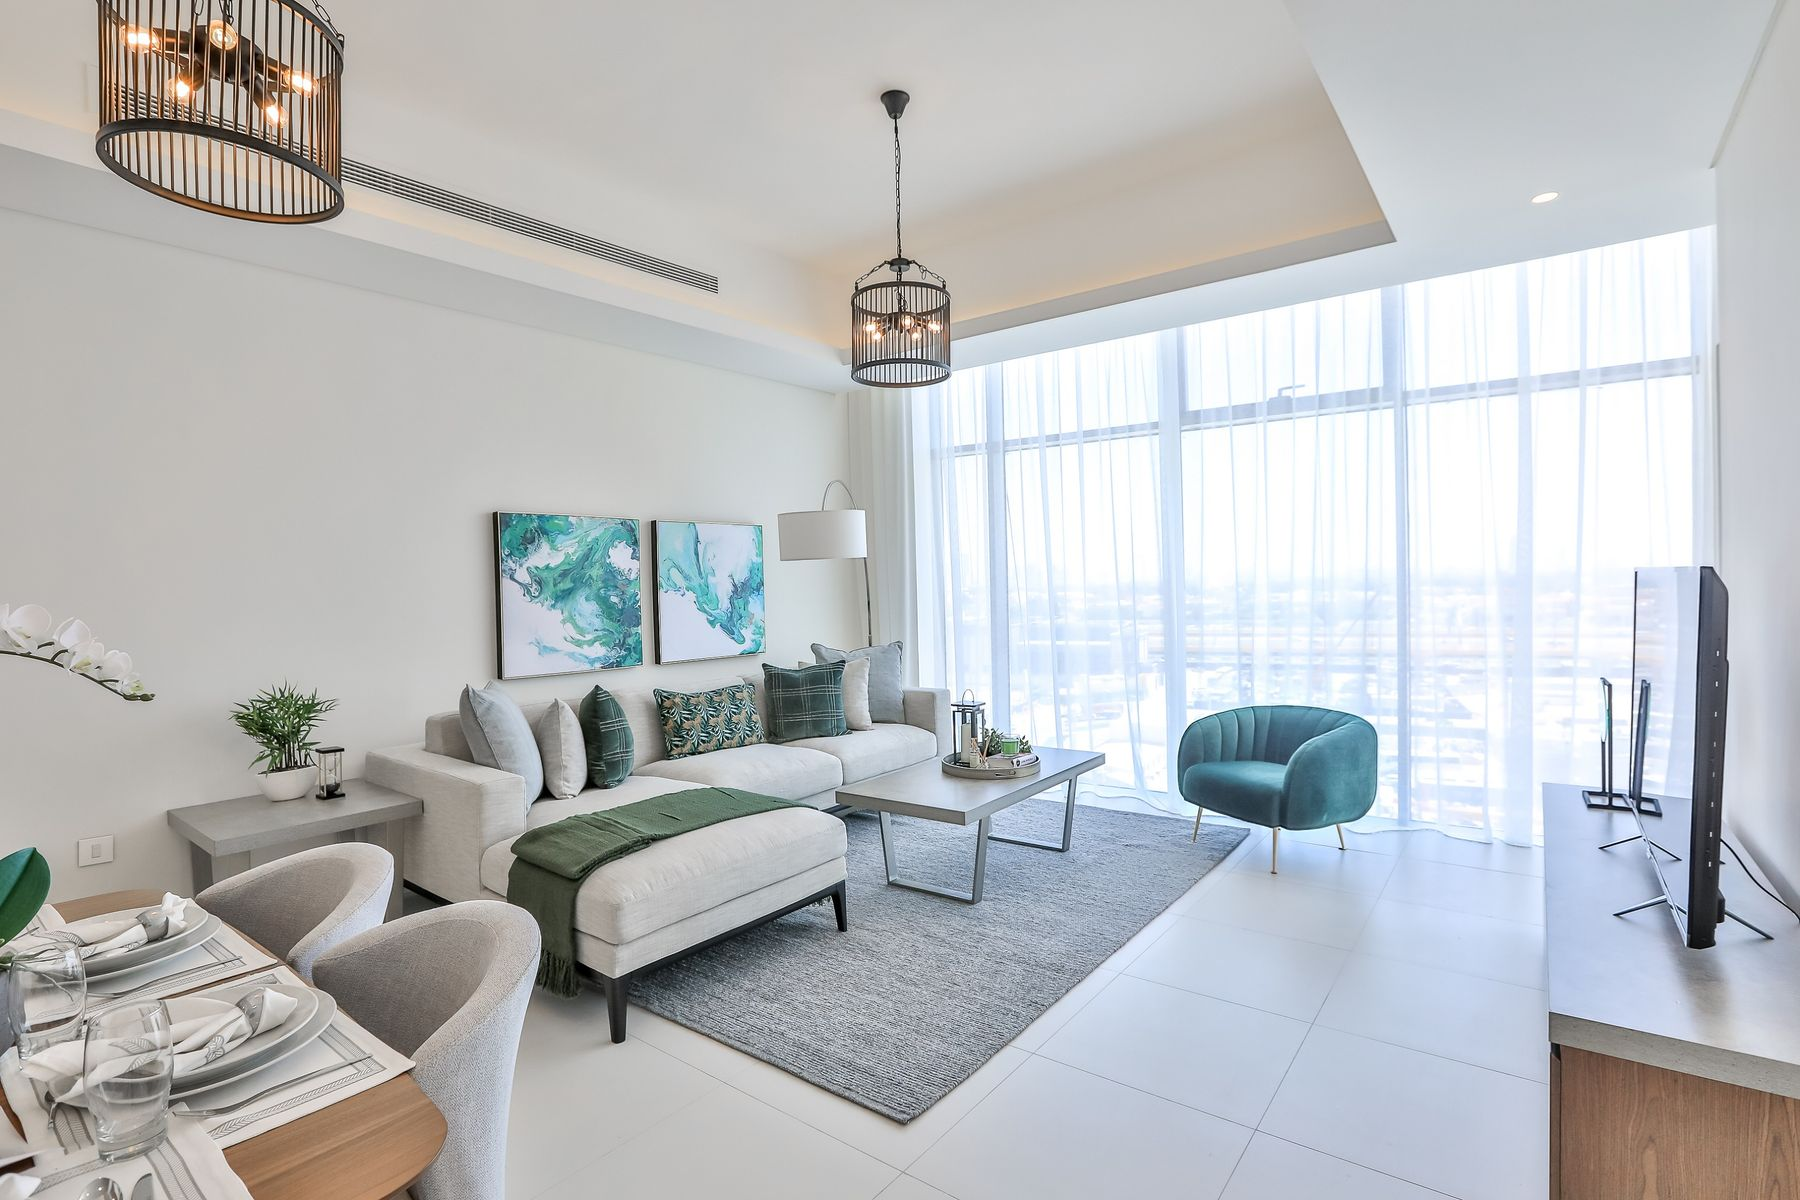 1Bed + Study For The Price of 1 Bed at Mada Residences